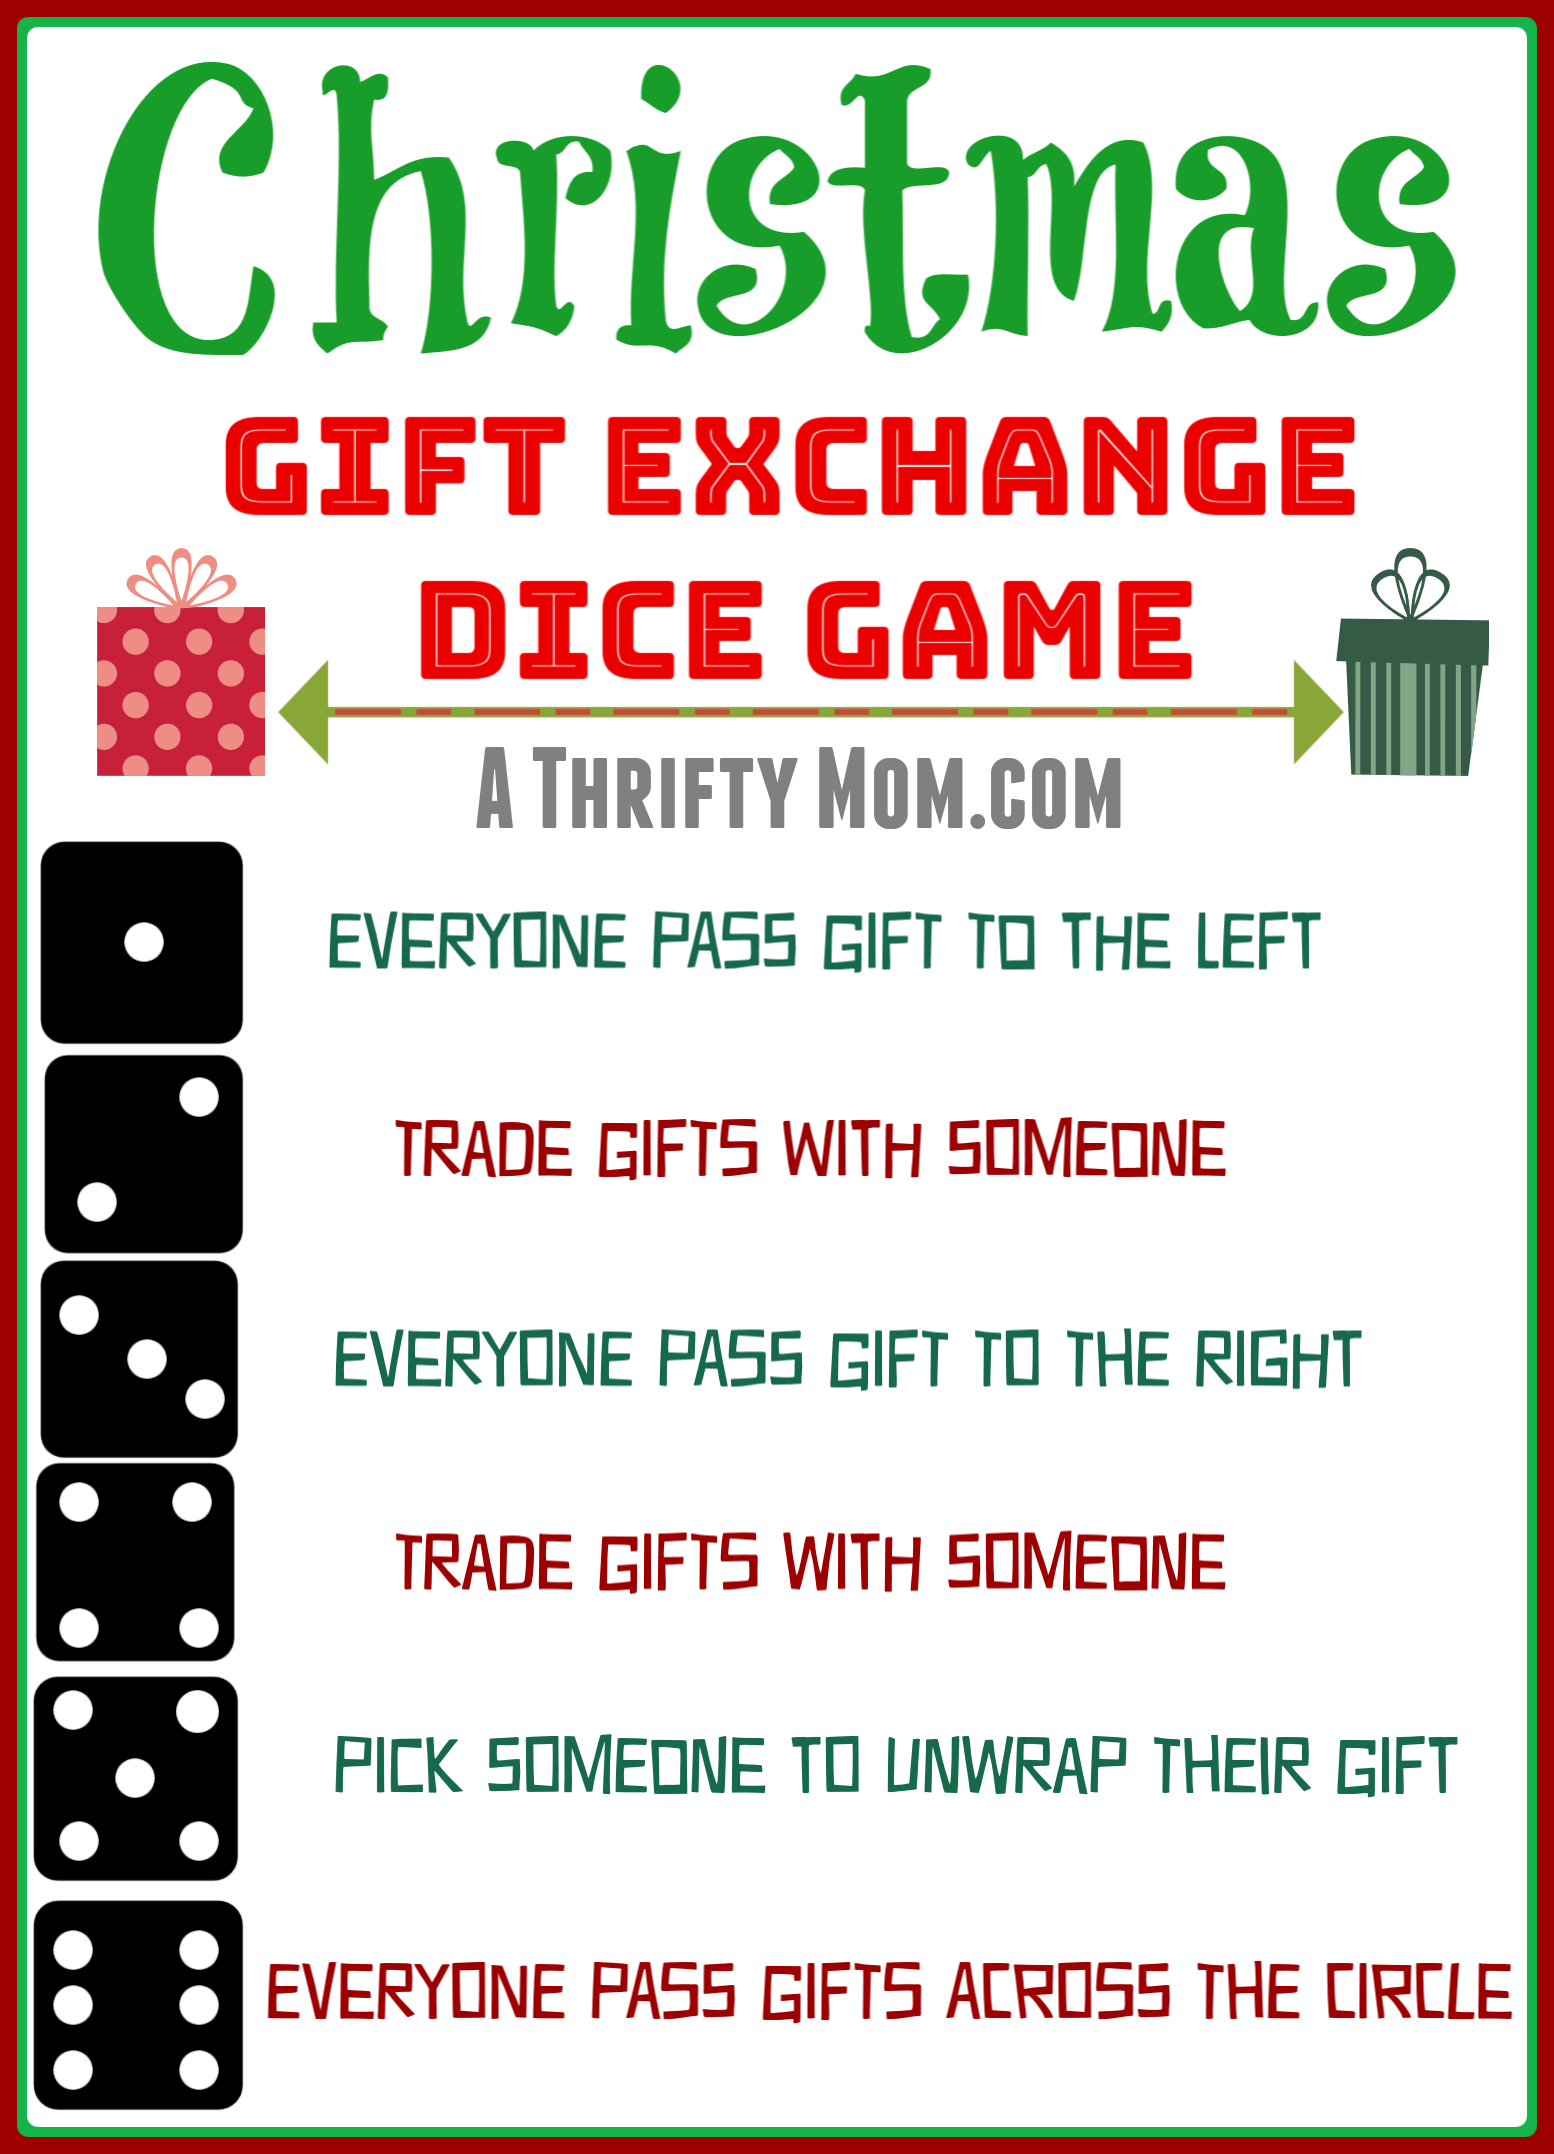 Christmas Gift Exchange Dice Game A Thrifty Mom Recipes Crafts Diy And More Christmas Gift Exchange Christmas Gift Games Holiday Gift Exchange